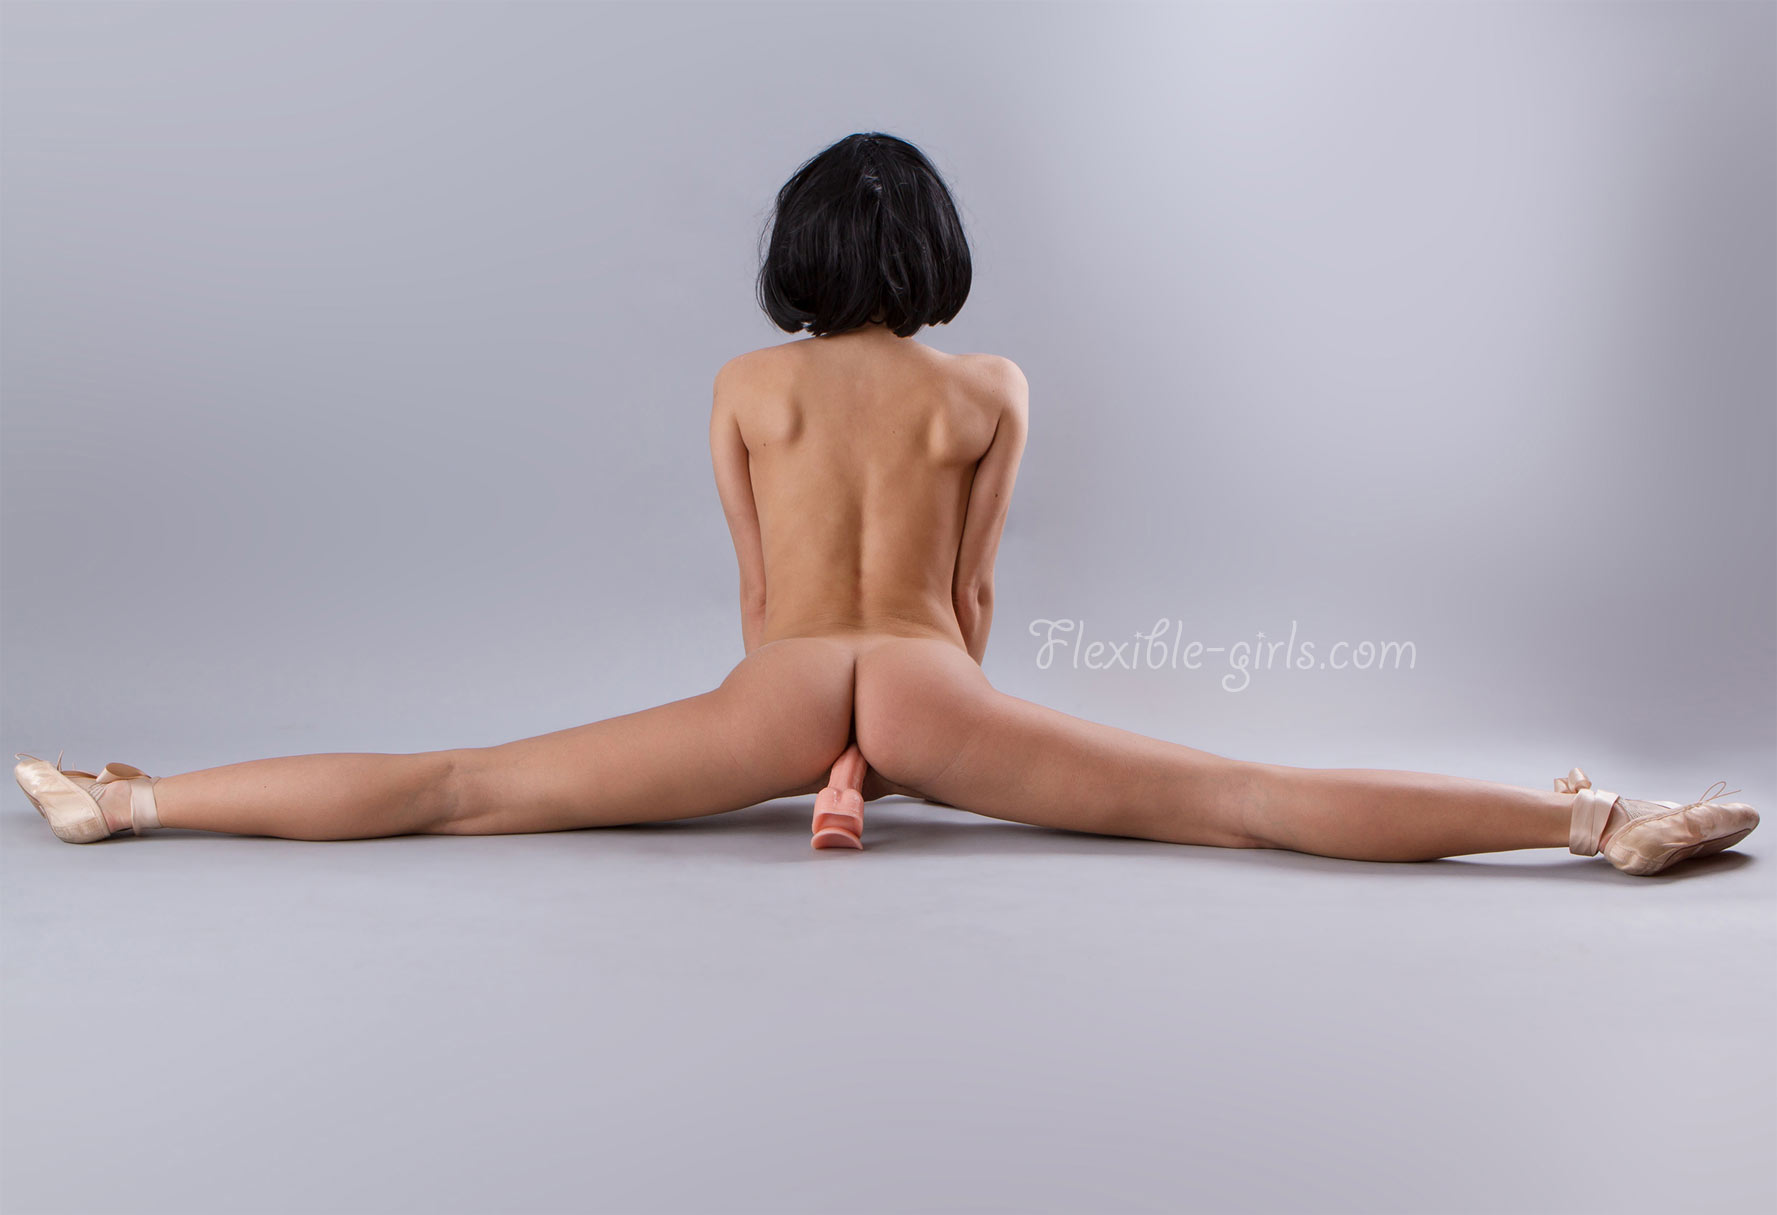 Flexible girl tumblr softcore galleries